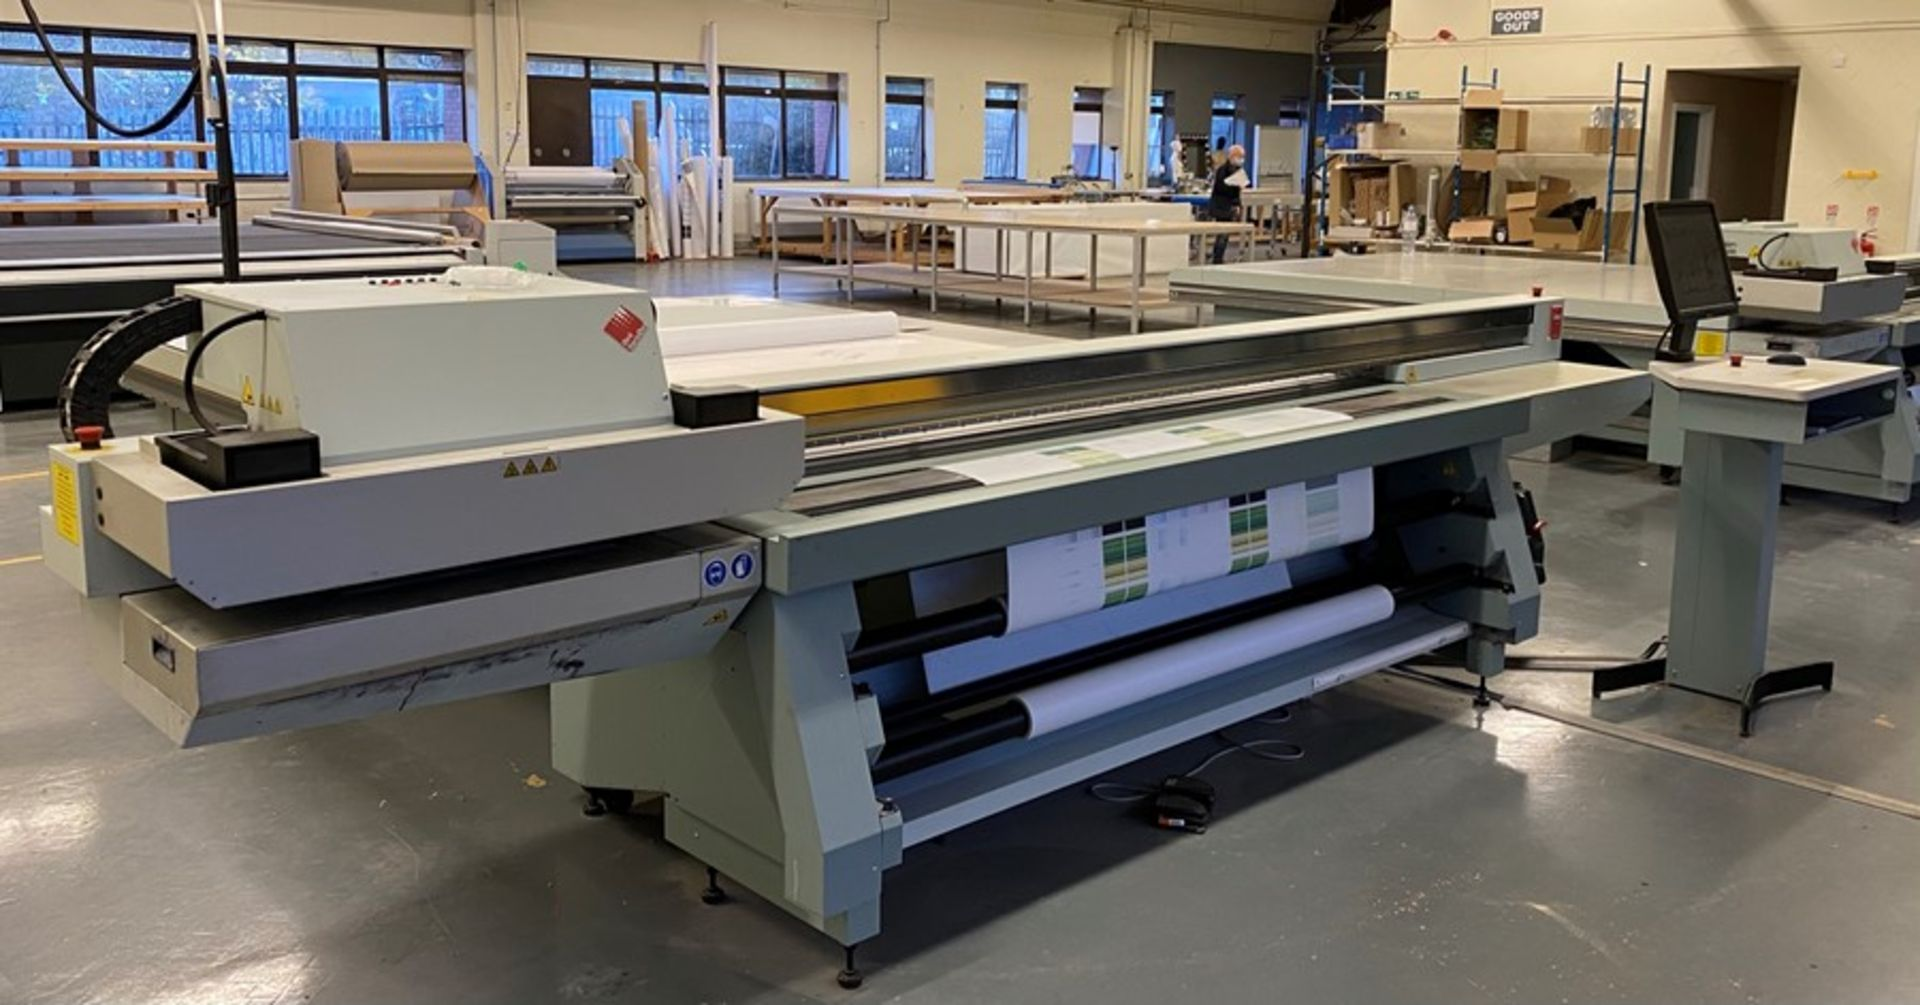 Oce Arizona 660 XT UV flatbed printer (2015) - Image 19 of 22